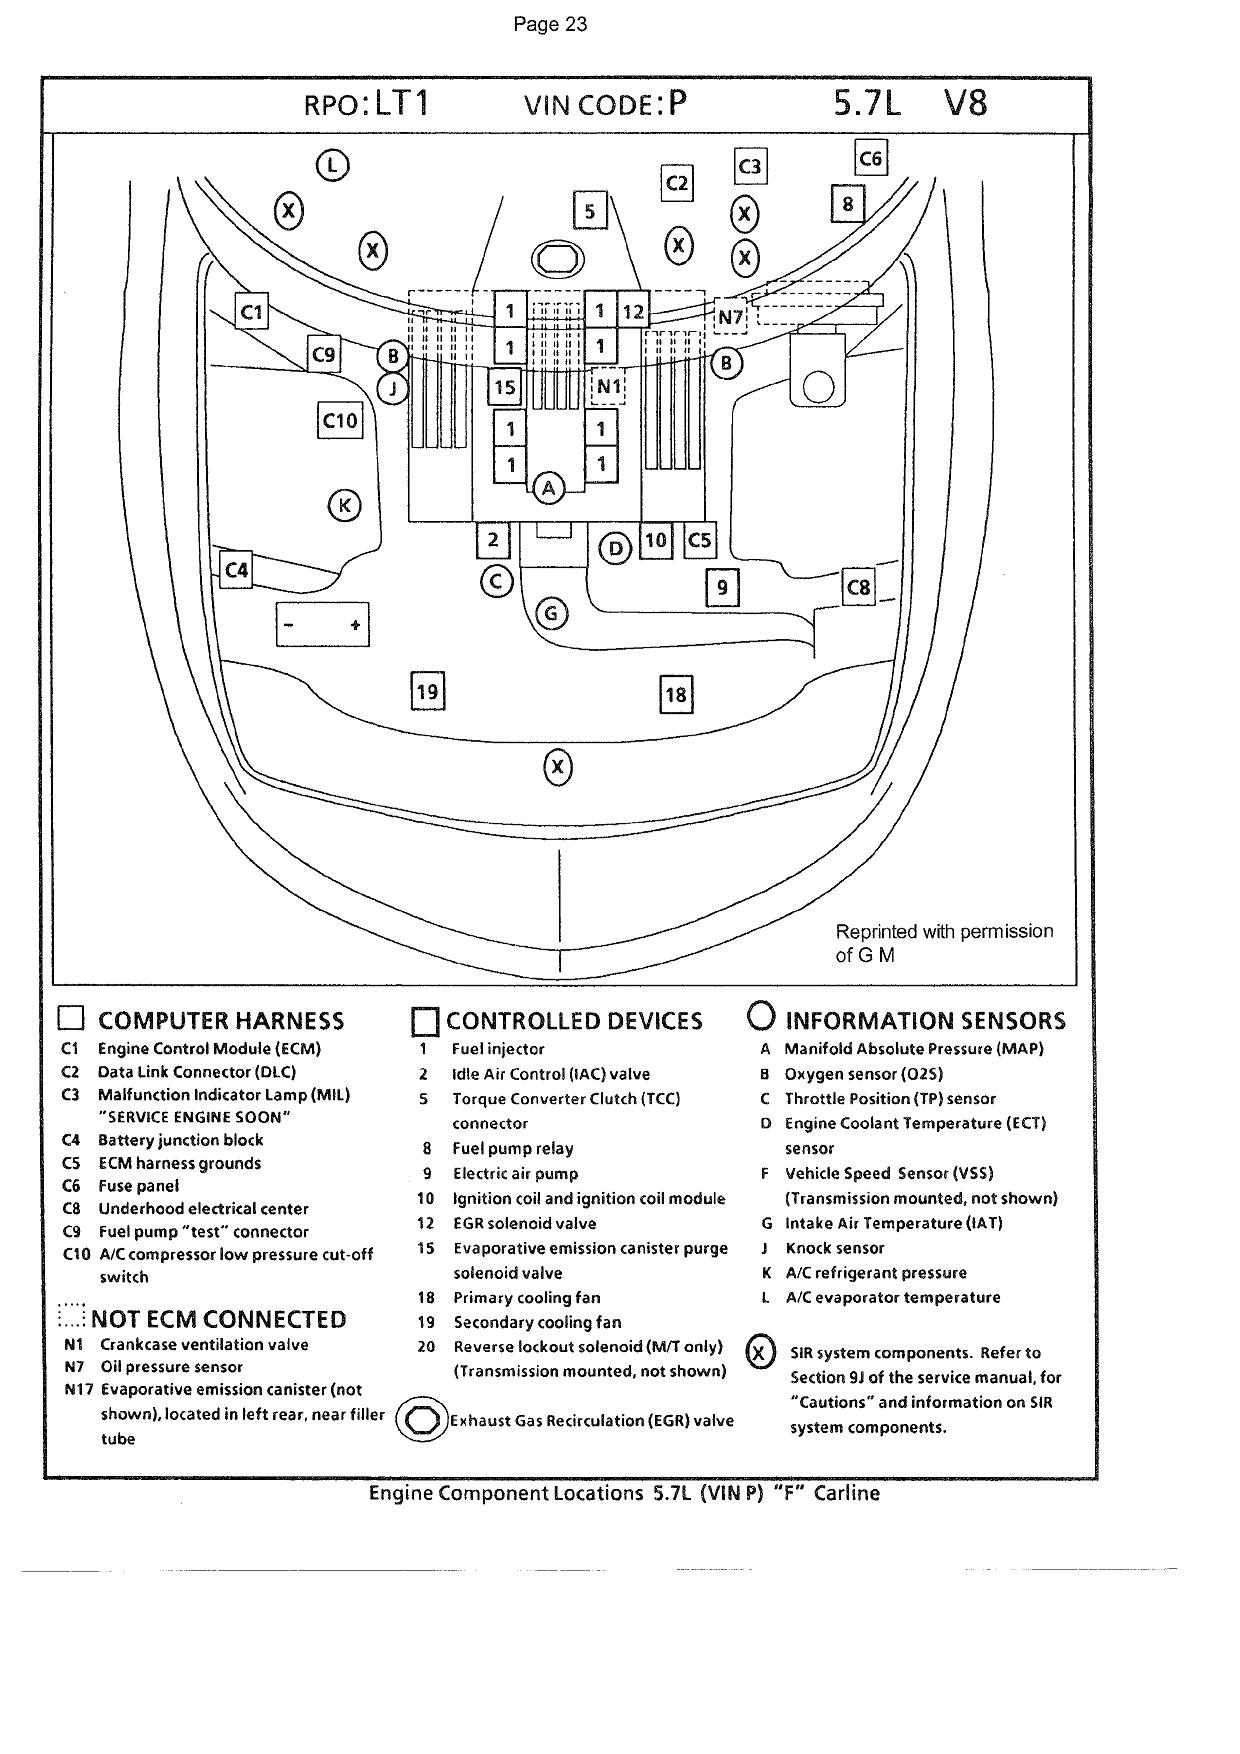 Lt1 F Body Engine Component Locations